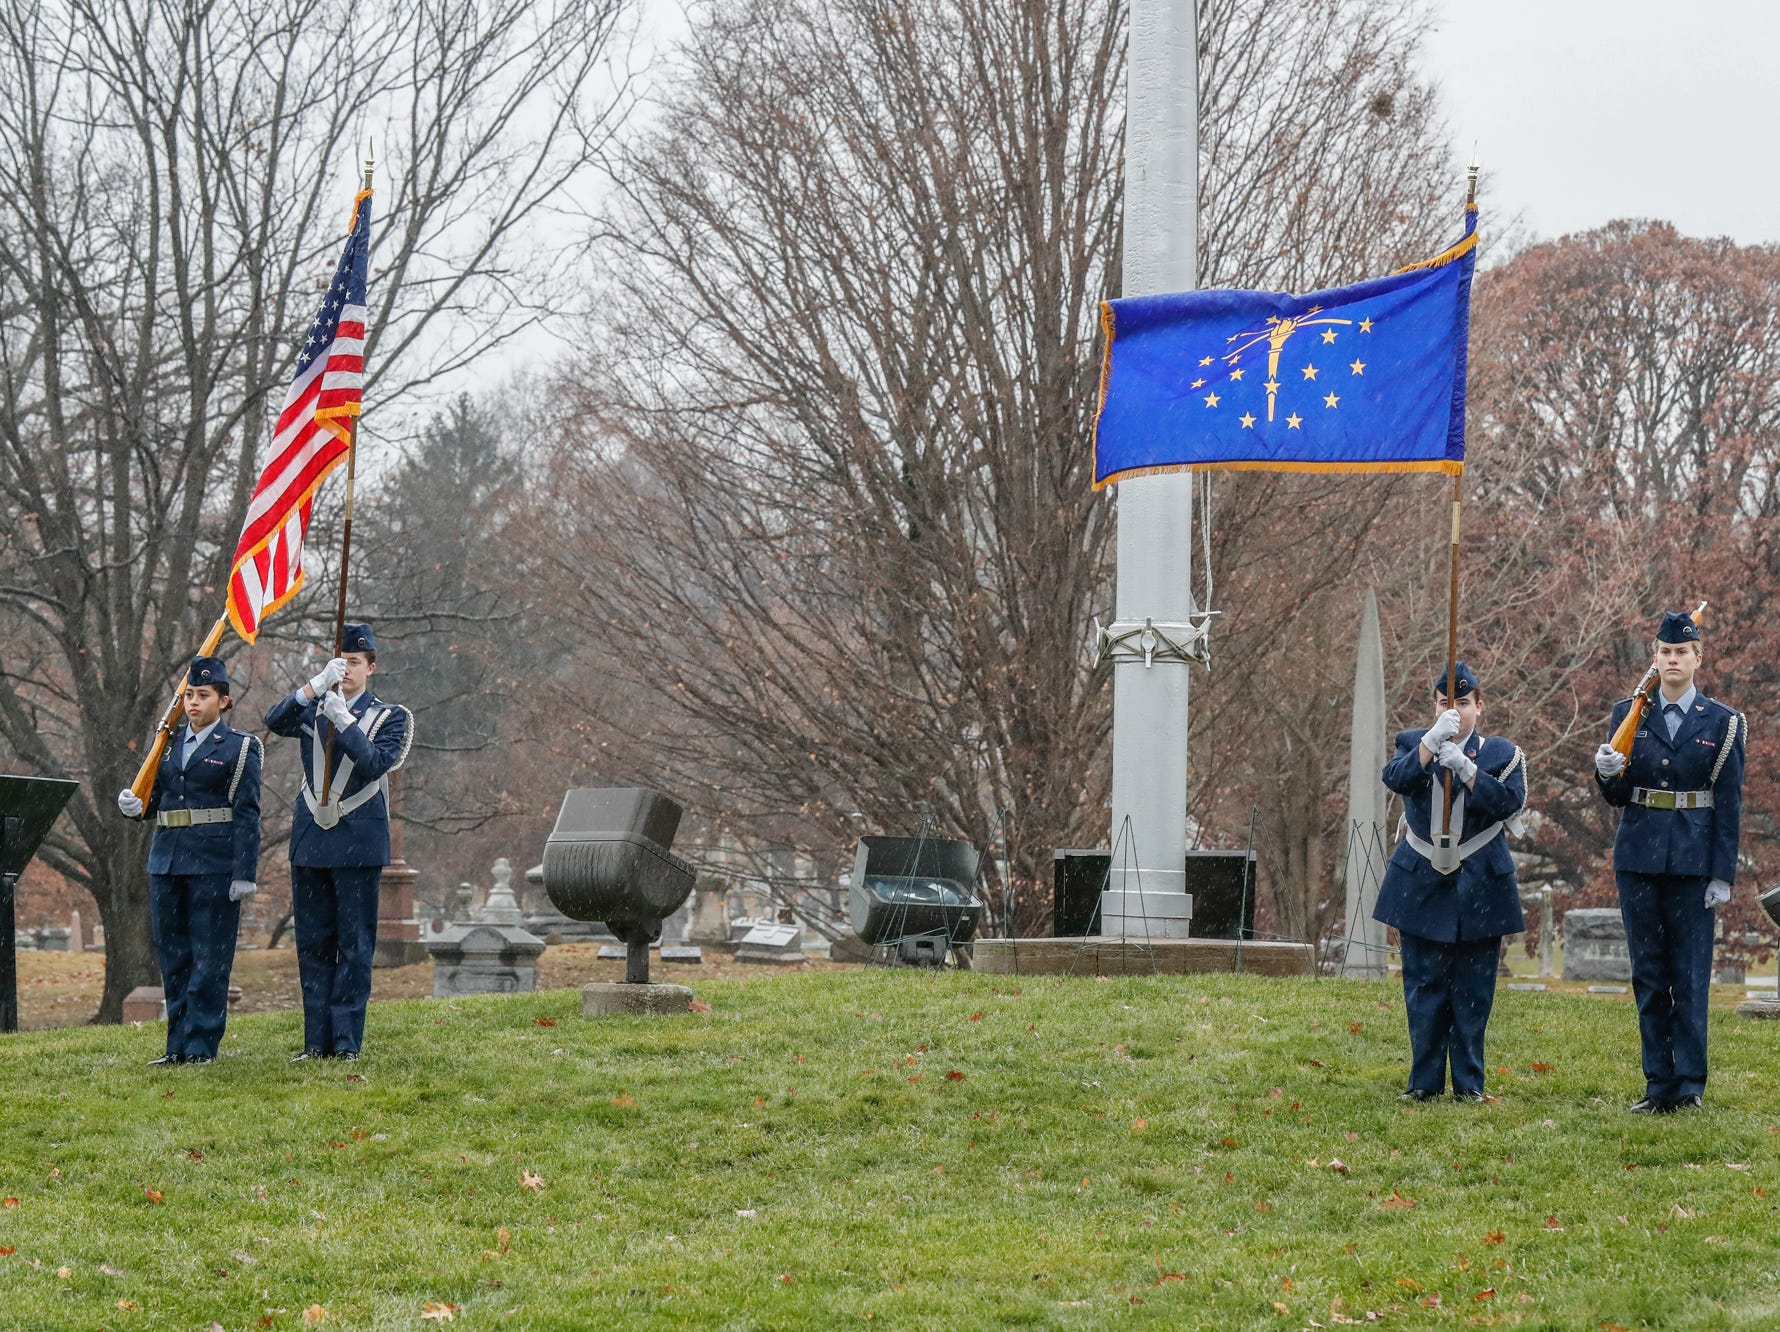 The Titan Cadet Squadron performs the Presentation of Colors during the Wreaths Across America wreath laying in remembrance of fallen military heroes at Crown Hill Cemetery on Saturday, Dec. 2018.